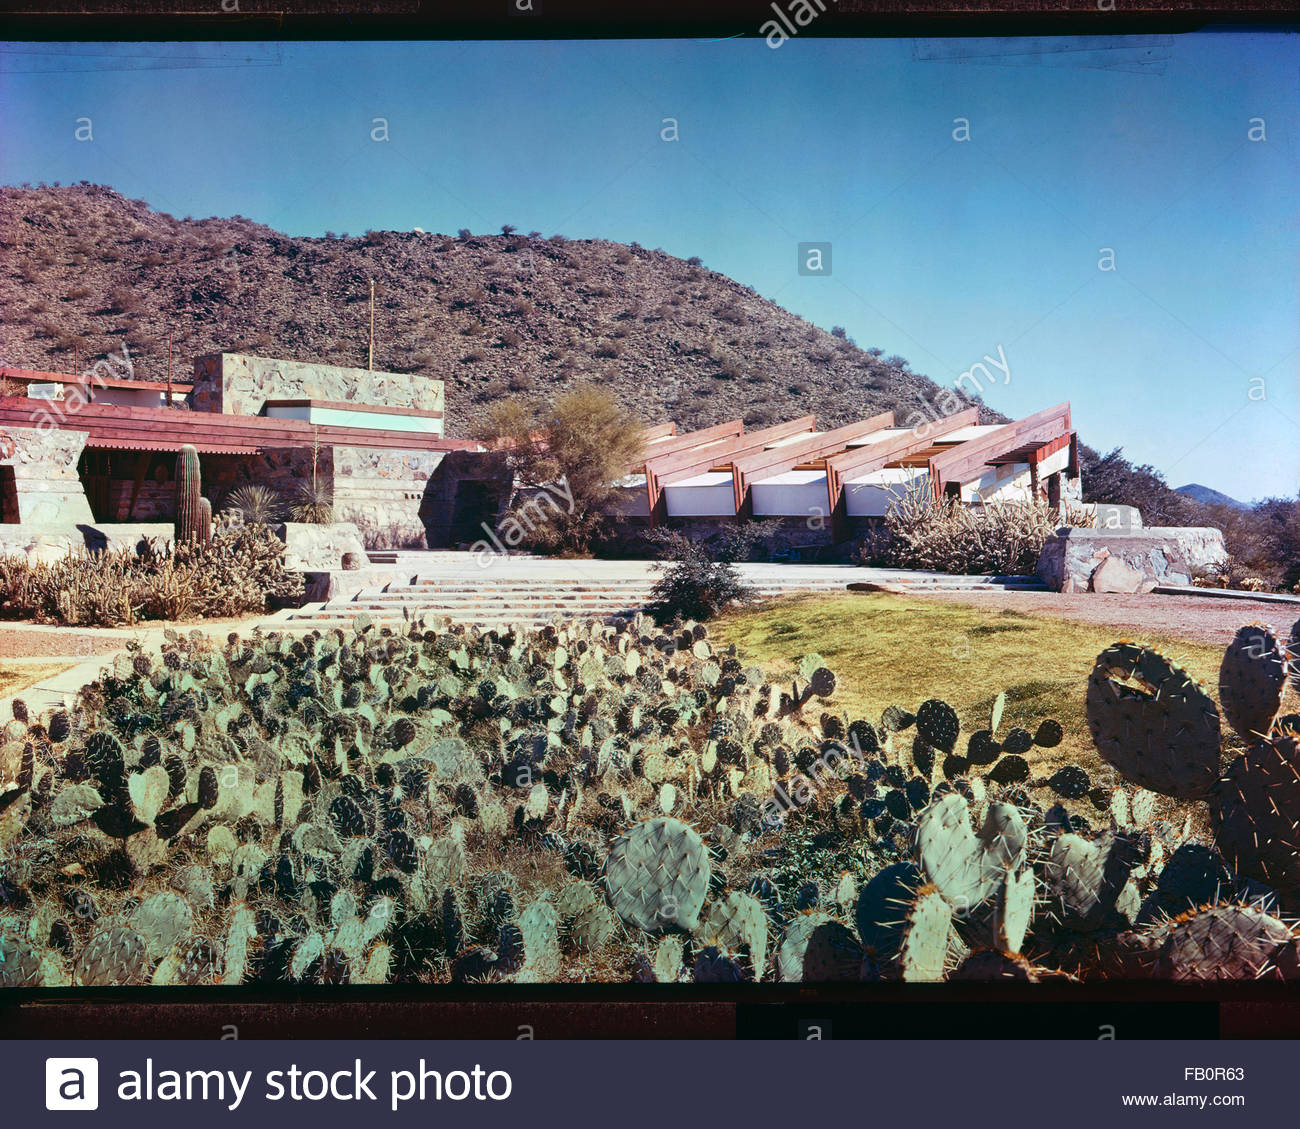 Taliesin West in Scottsdale (Ariz.), 1942 Feb.-1963. Exterior view of building with cactus in foreground. - Stock Image